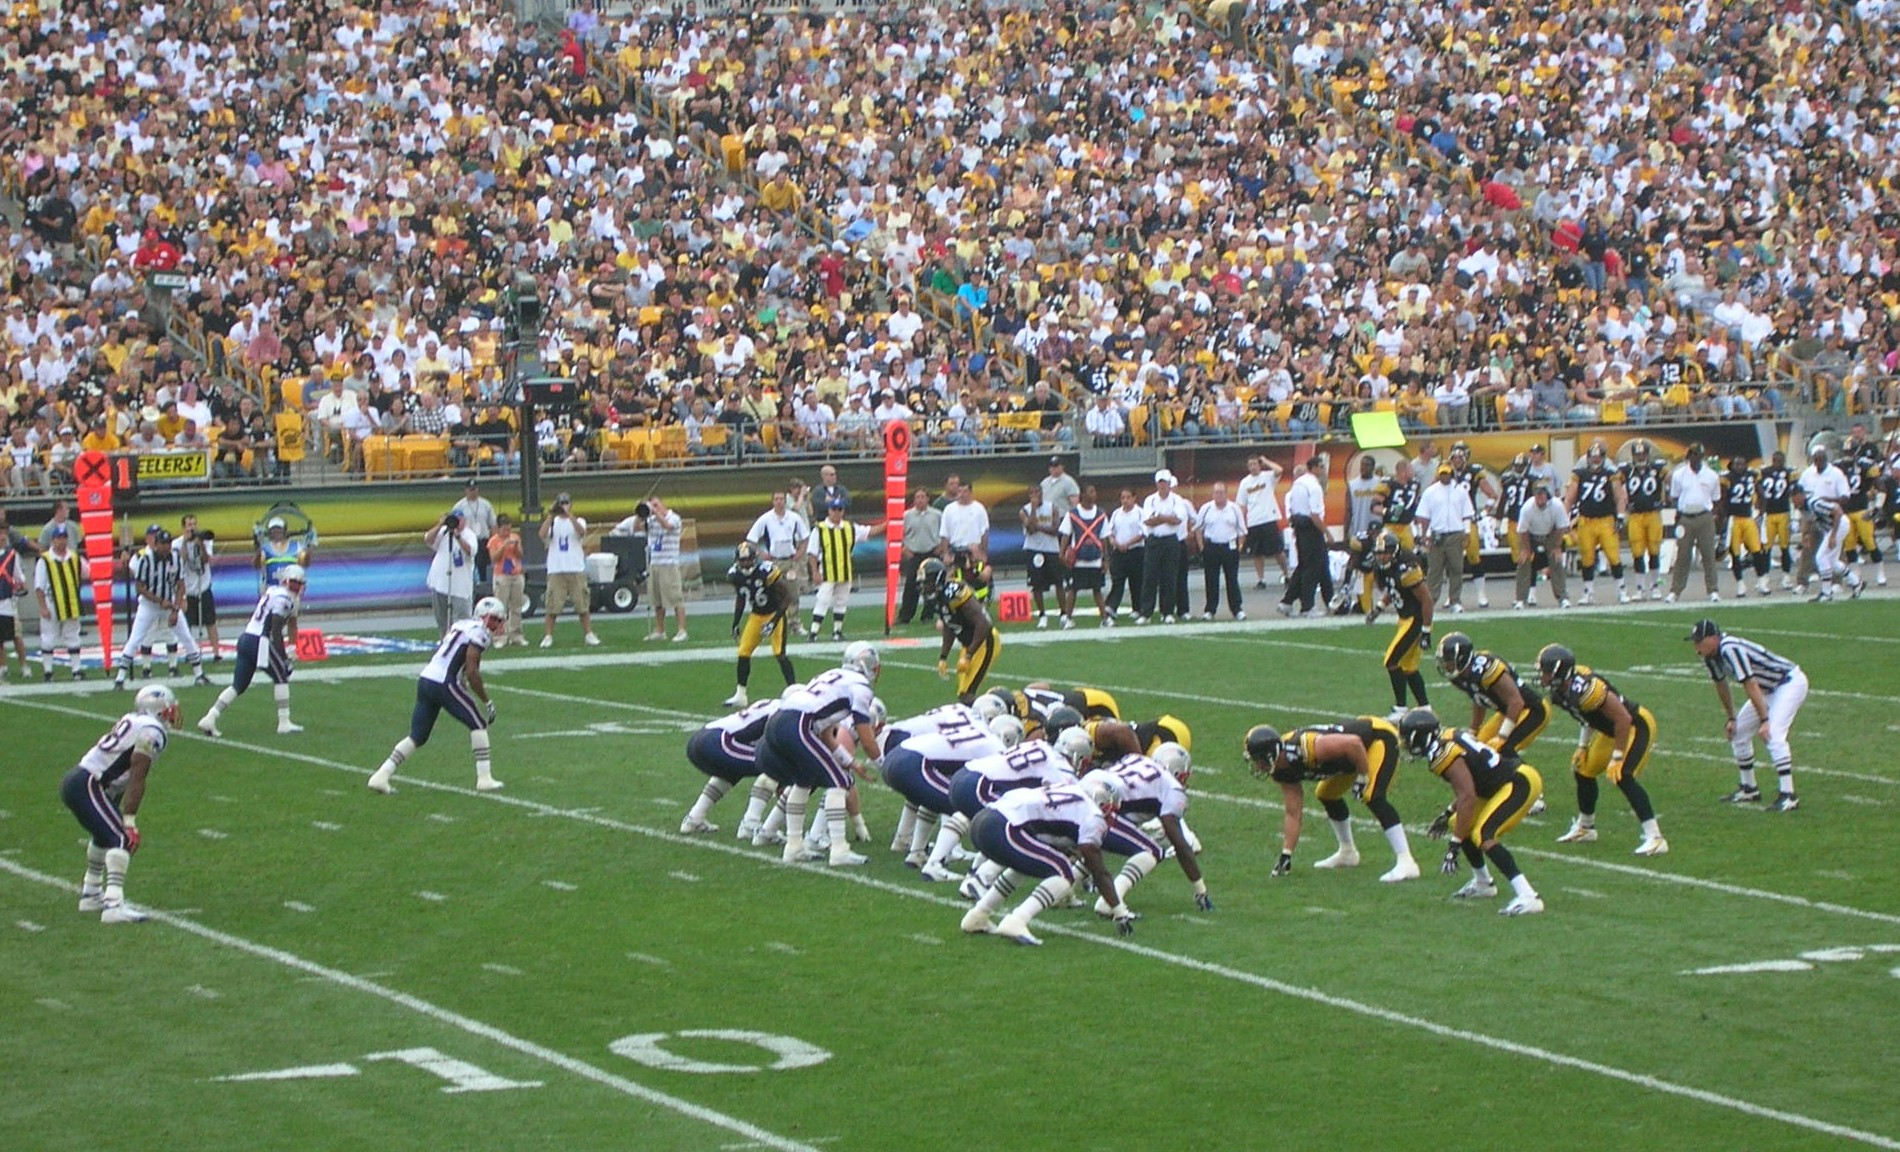 Patriots vs Steelers, By Bernard Gagnon, via Wikimedia Commons